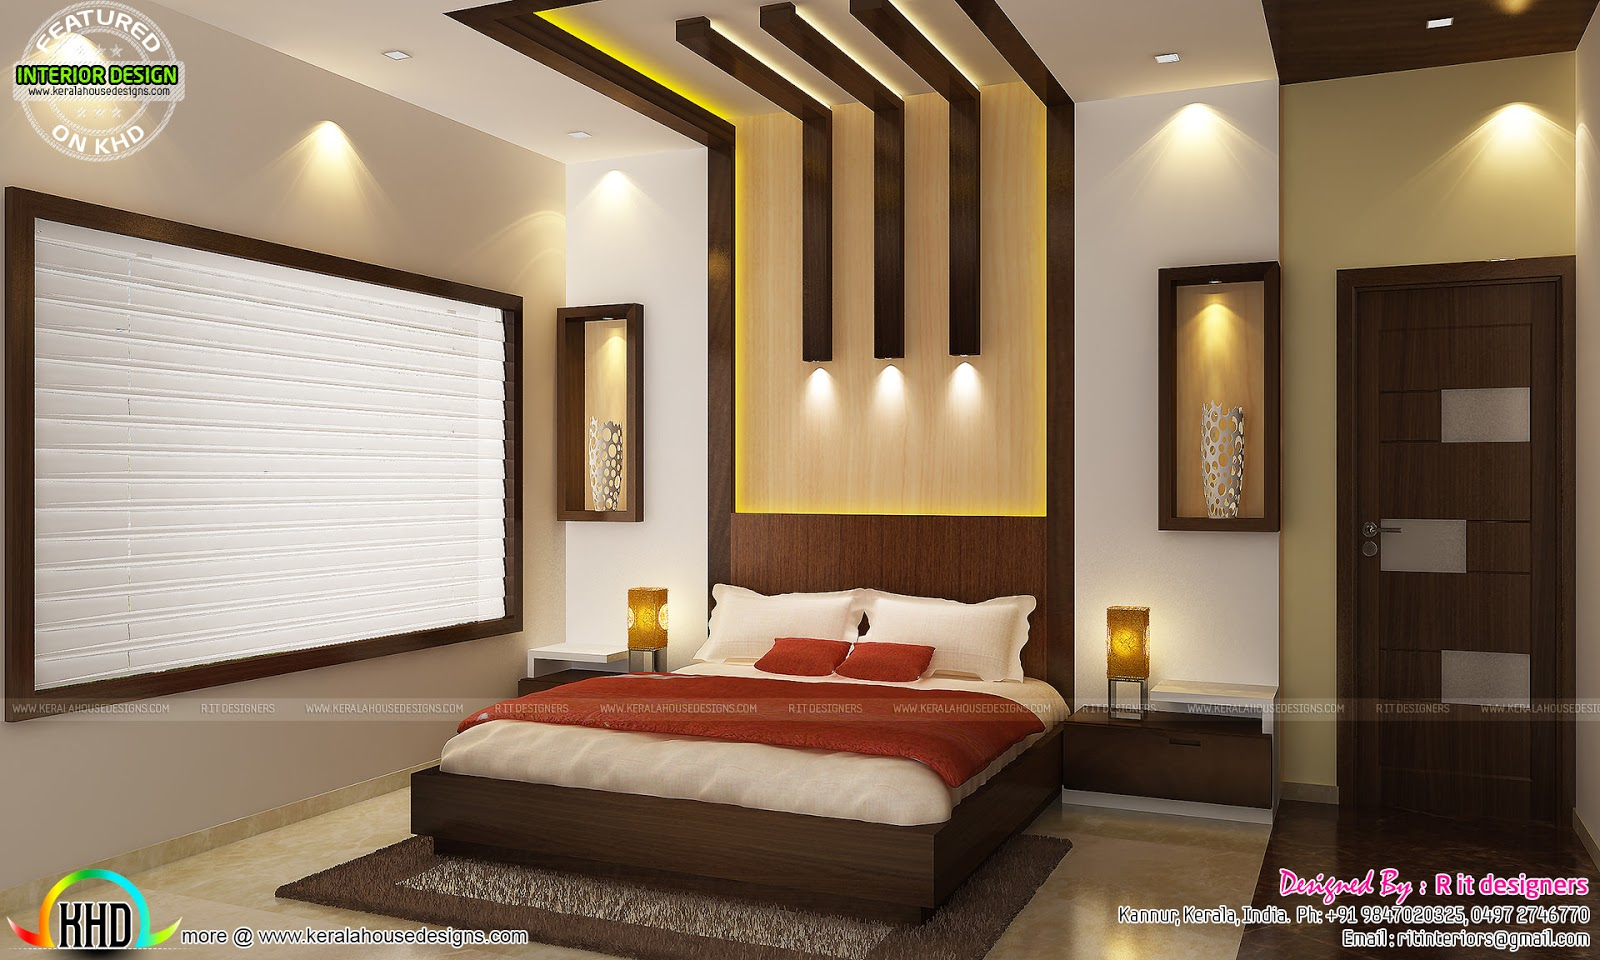 Kitchen living bedroom dining interior decor kerala for Bedroom images interior designs